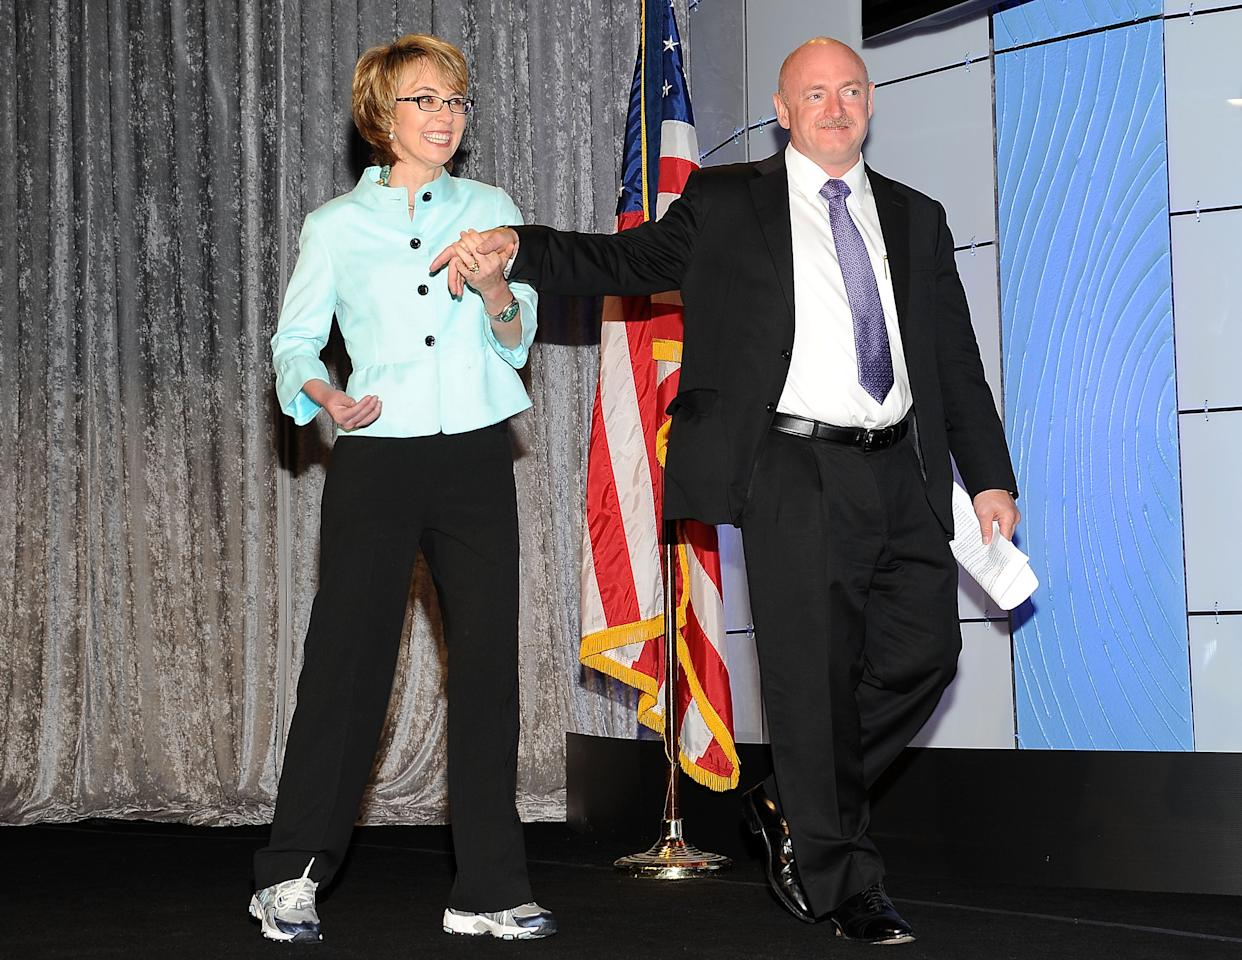 BEVERLY HILLS, CA - MAY 23:  Congresswoman Gabrielle Giffords and husband astronaut Mark Kelly attend the Simon Wiesenthal Center's Annual National Tribute Dinner Honoring Jerry Bruckheimer at The Beverly Hilton Hotel on May 23, 2012 in Beverly Hills, California.  (Photo by Valerie Macon/Getty Images)